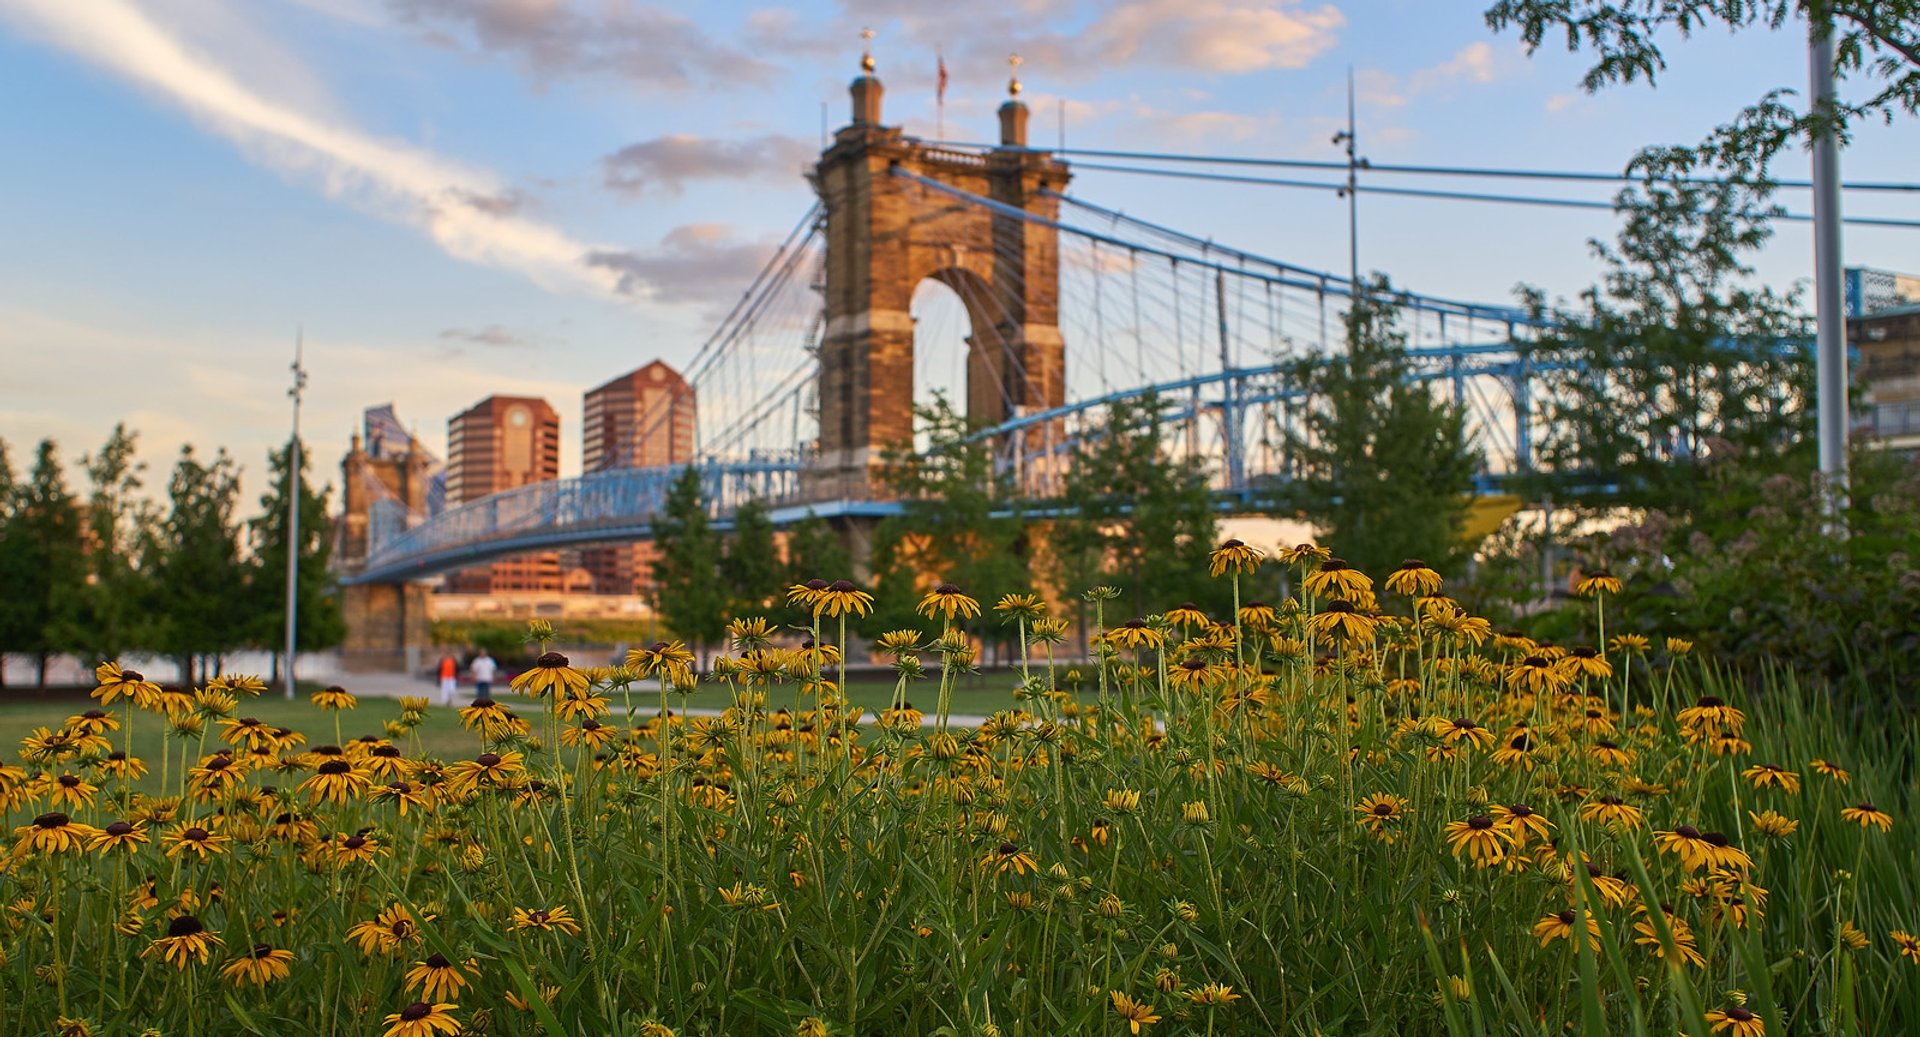 Flowers in Smale Park with the view over the John A. Roebling Suspension Bridge 2020